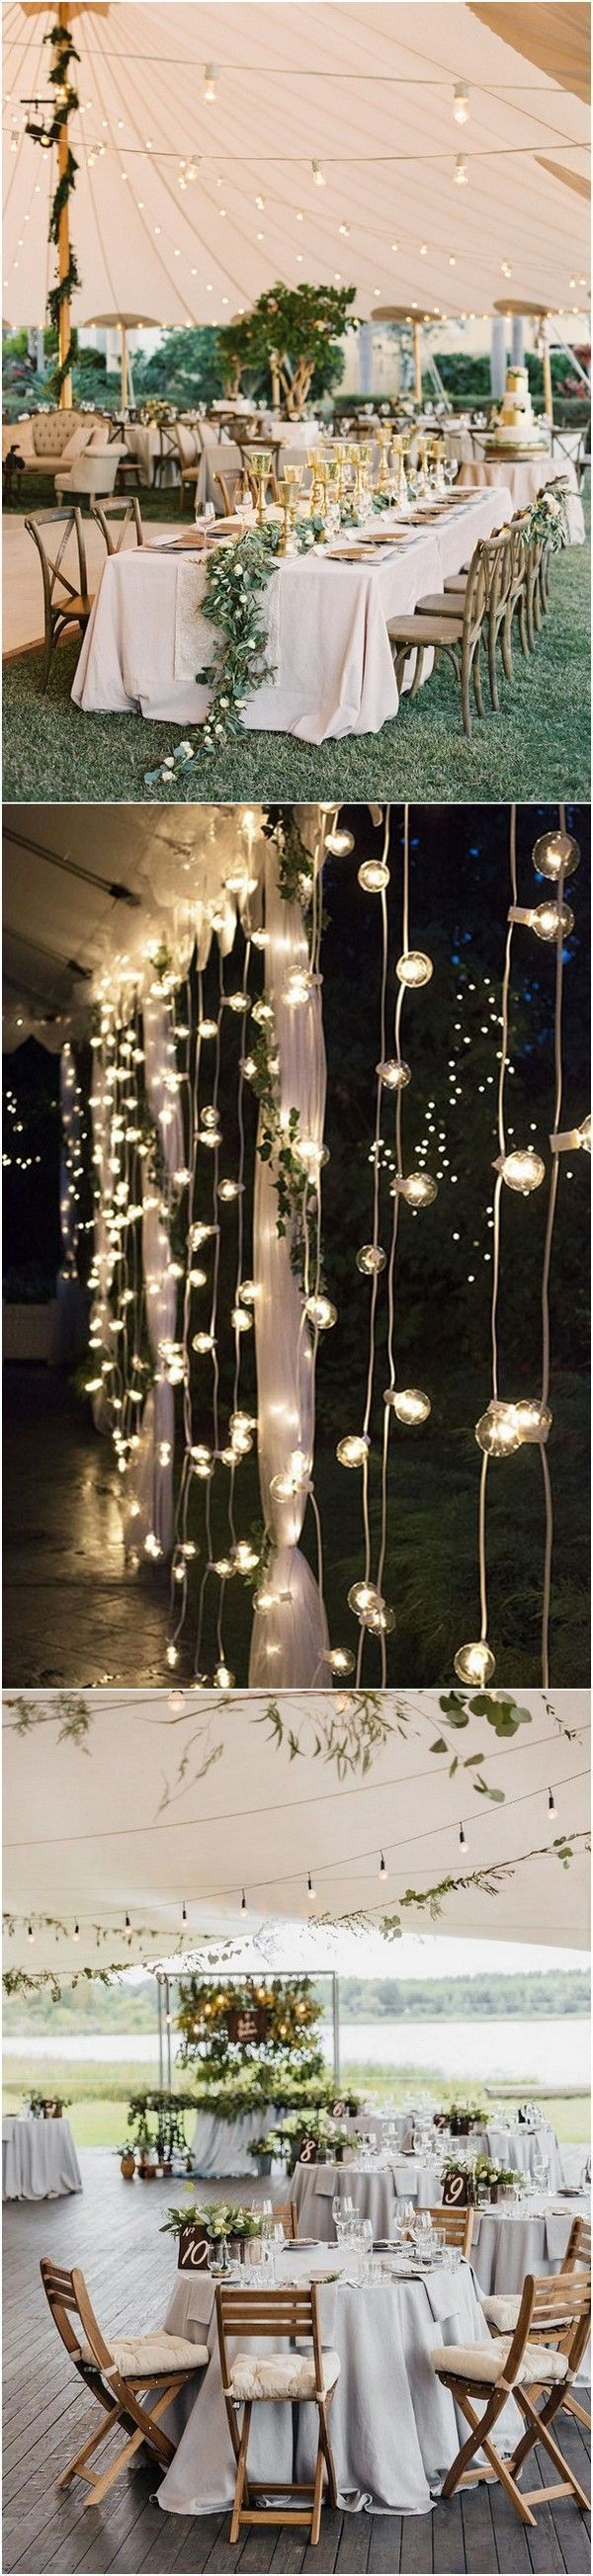 Outdoor wedding decor lights  Trending Tented Wedding Reception Ideas Youull Love  Page  of